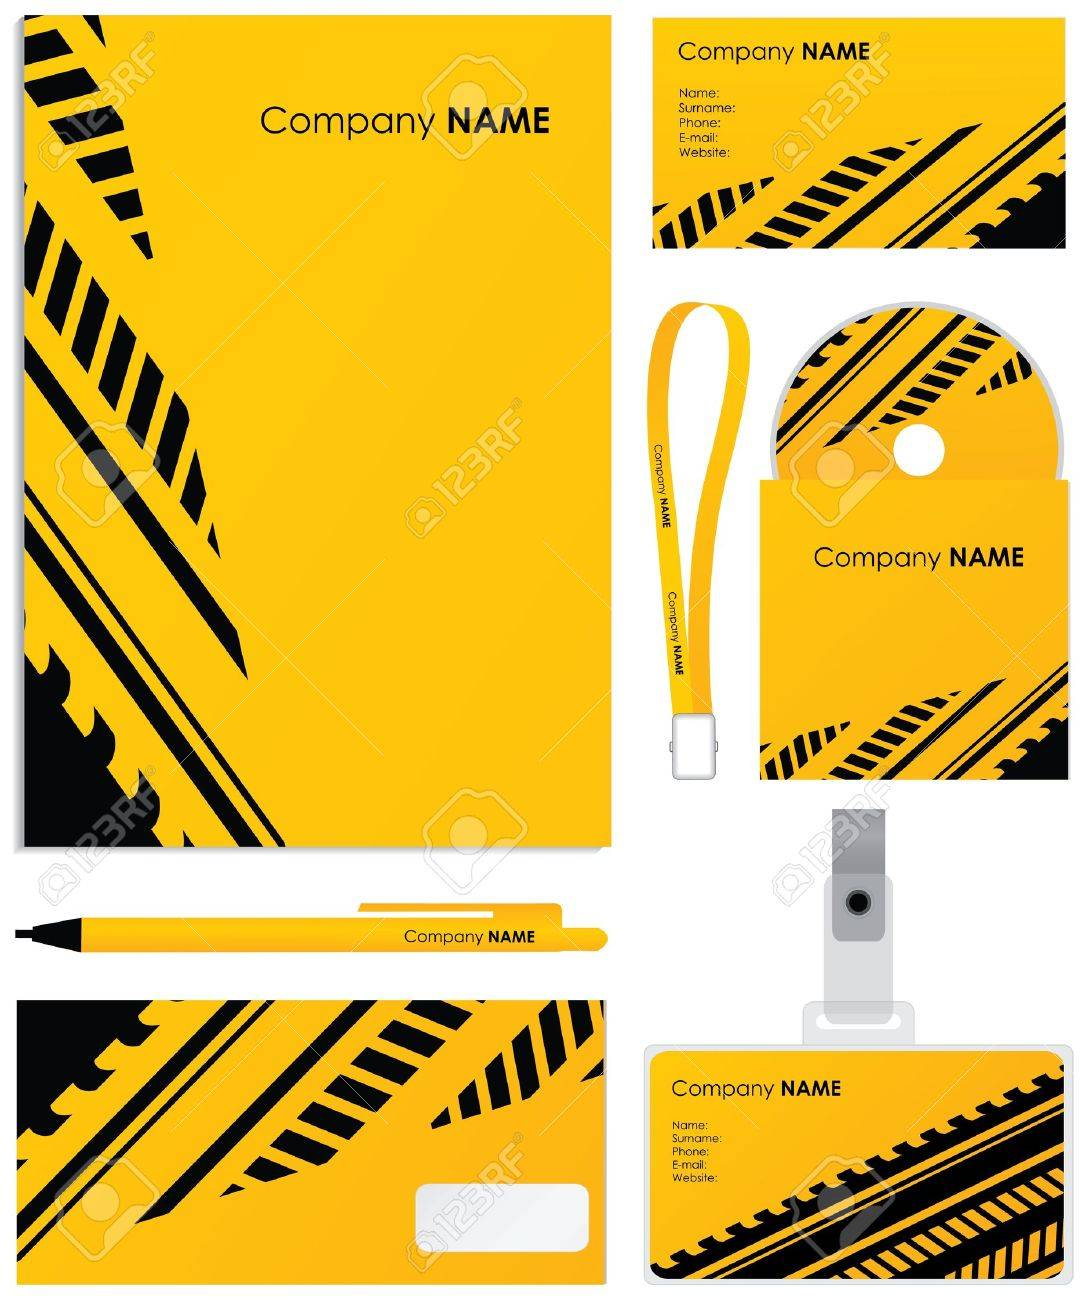 Cd box template download free vector art stock graphics amp images - Cd Template Template Background Blank Card Cd Note Paper